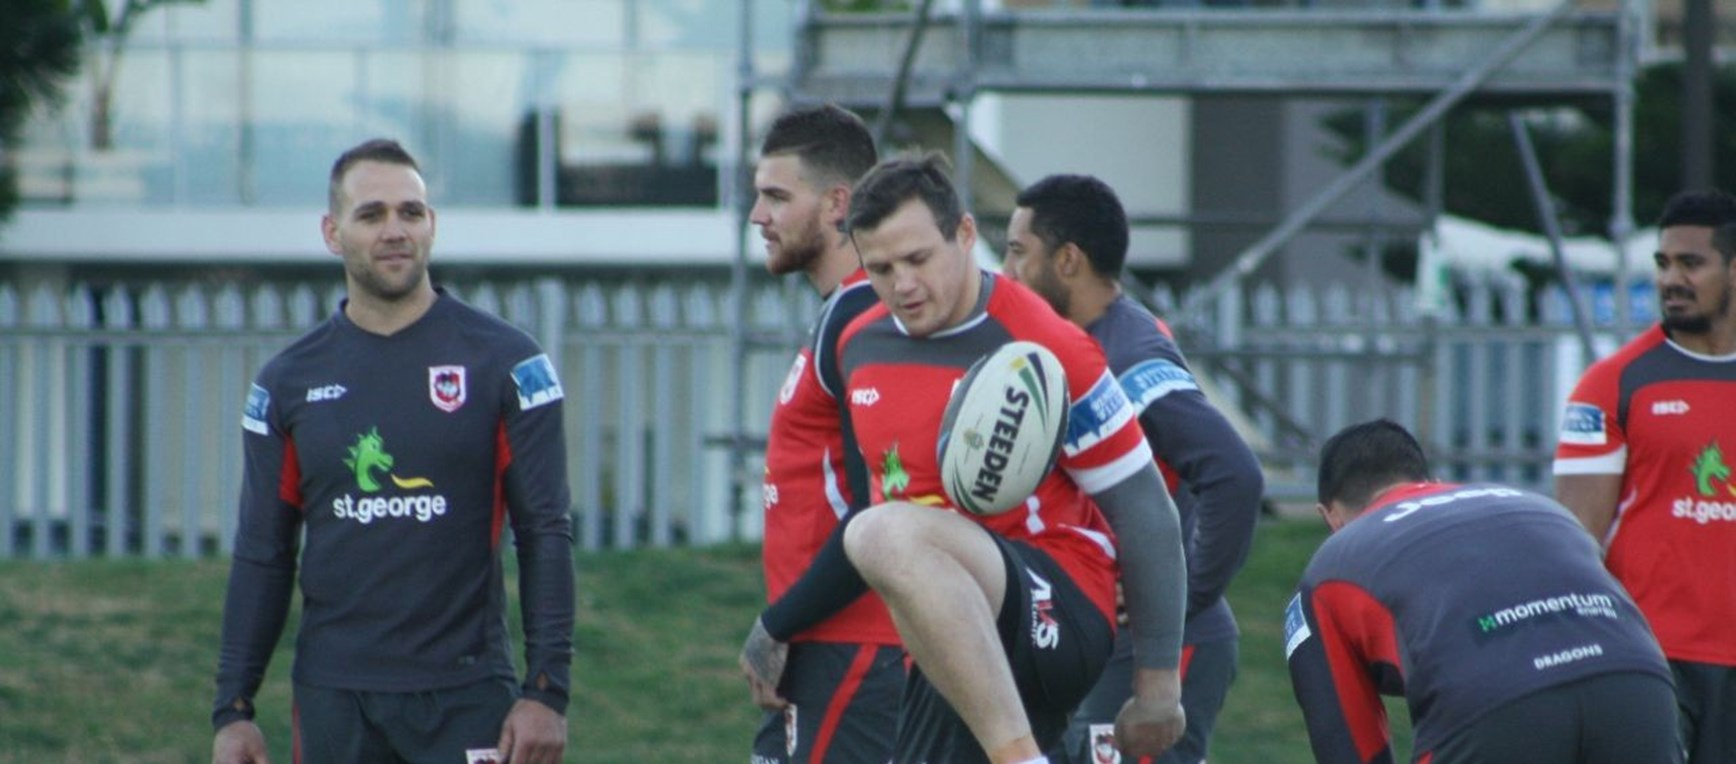 Dragons Prepare For Panthers